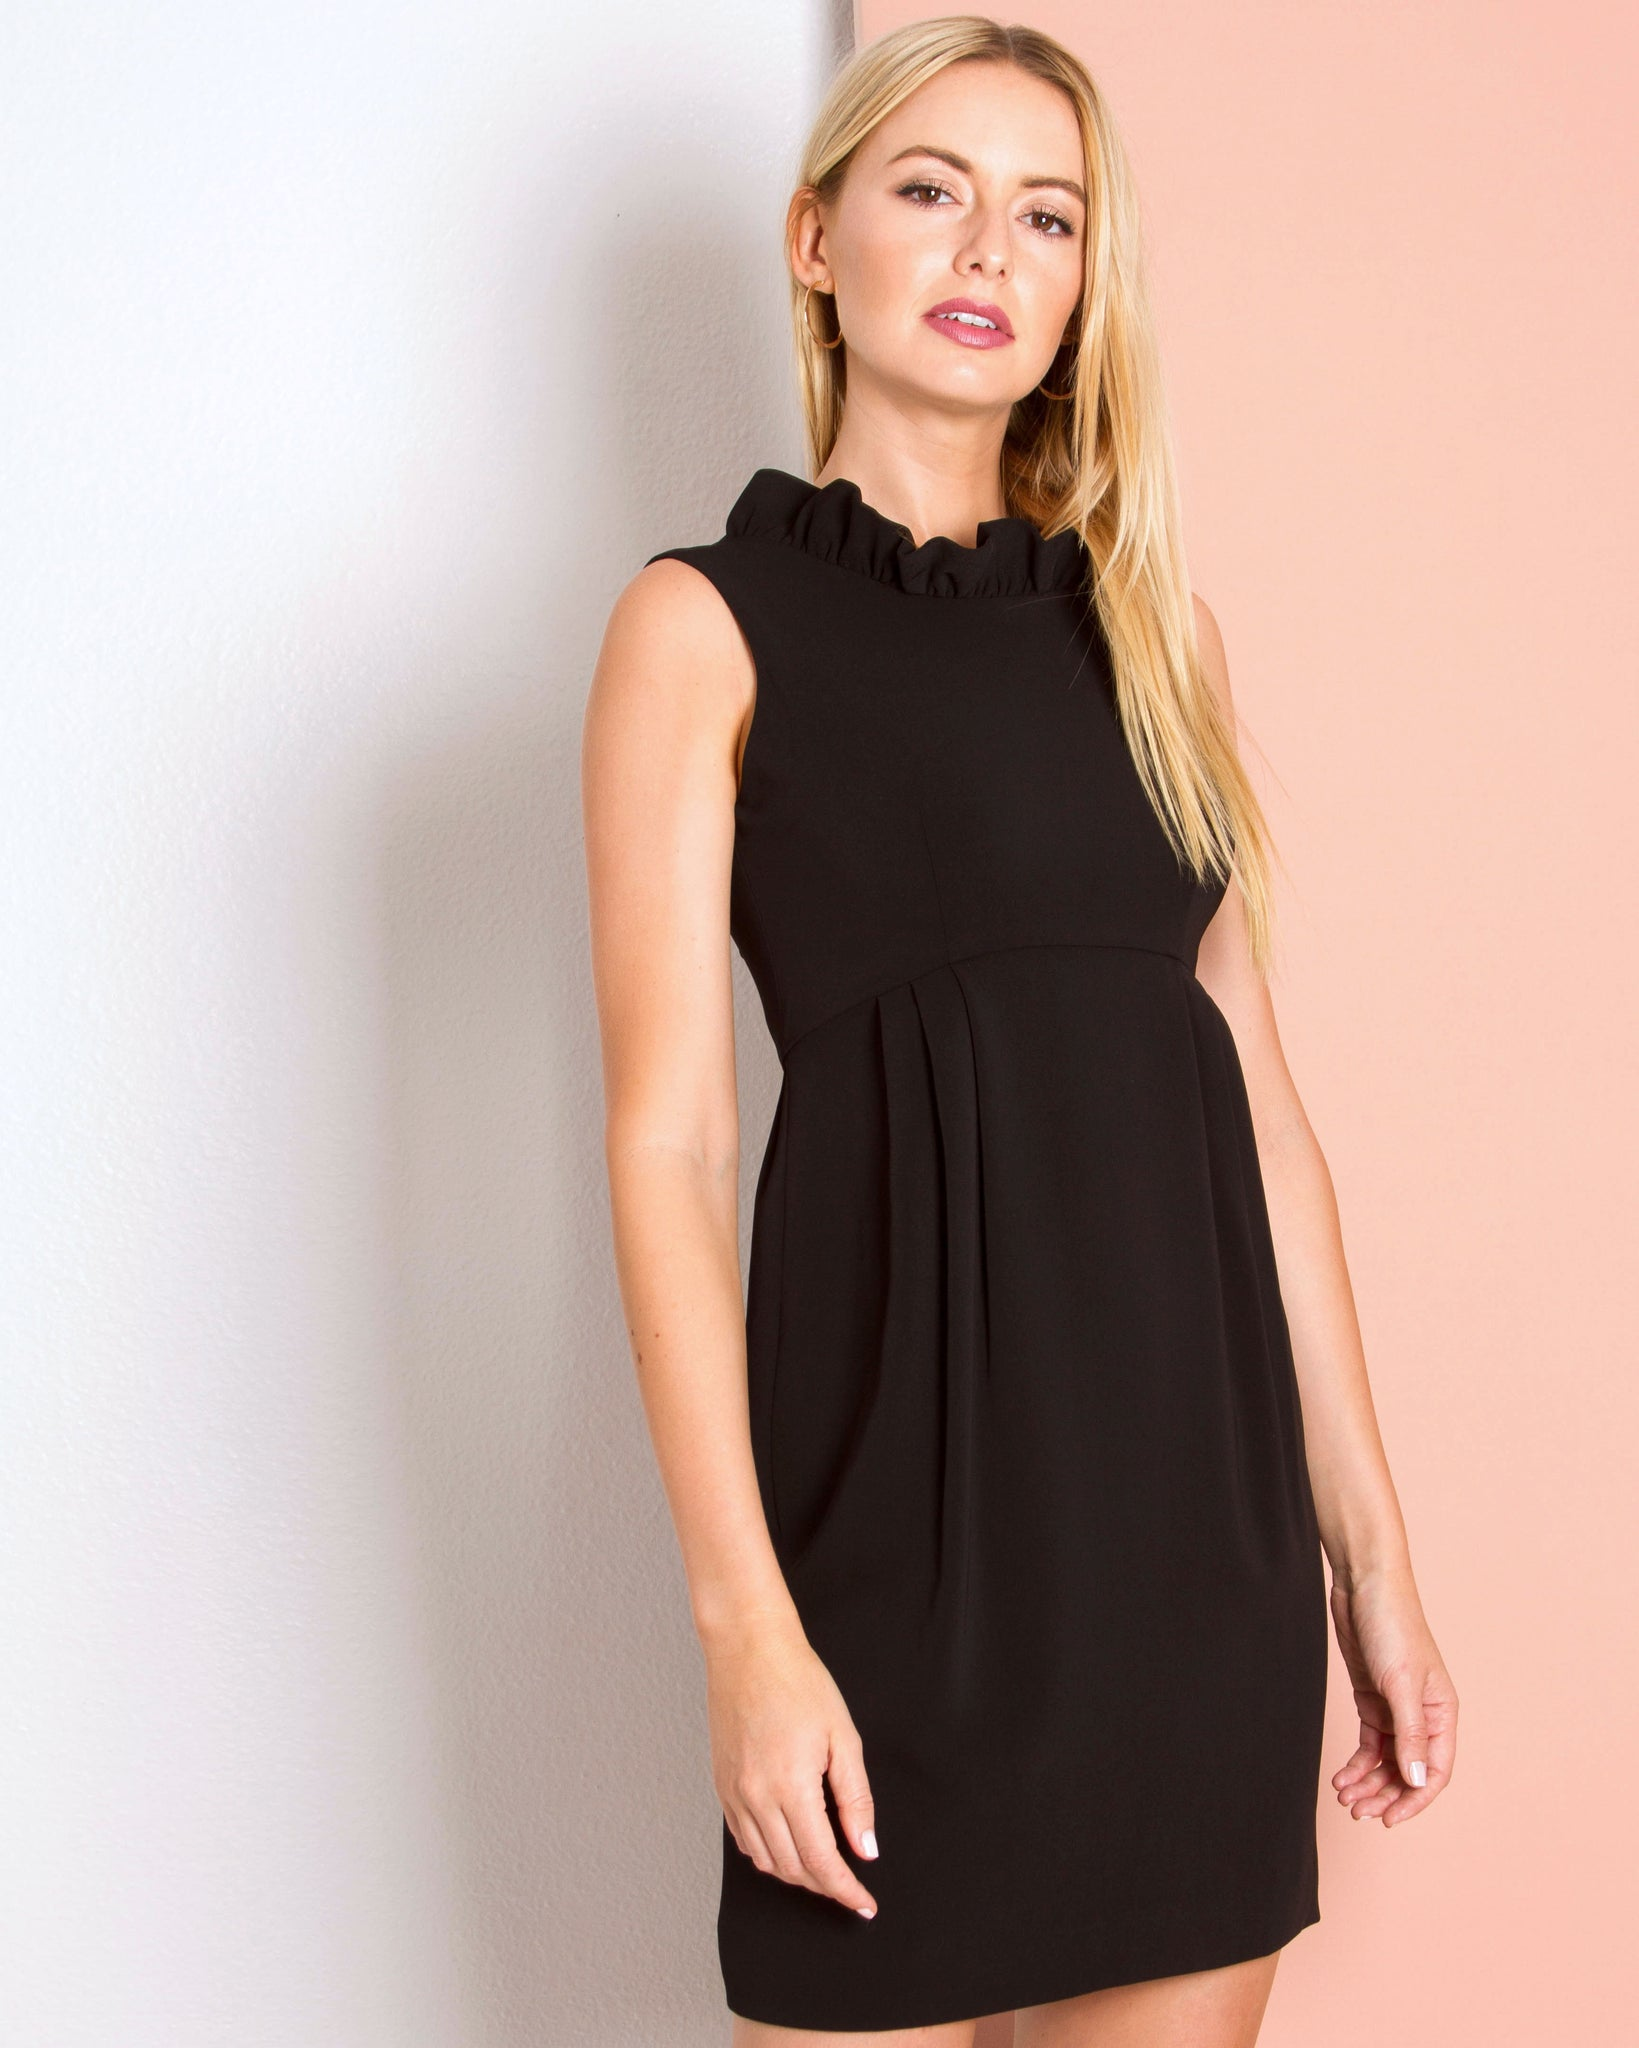 Camilyn Beth GO GO Dress - Black